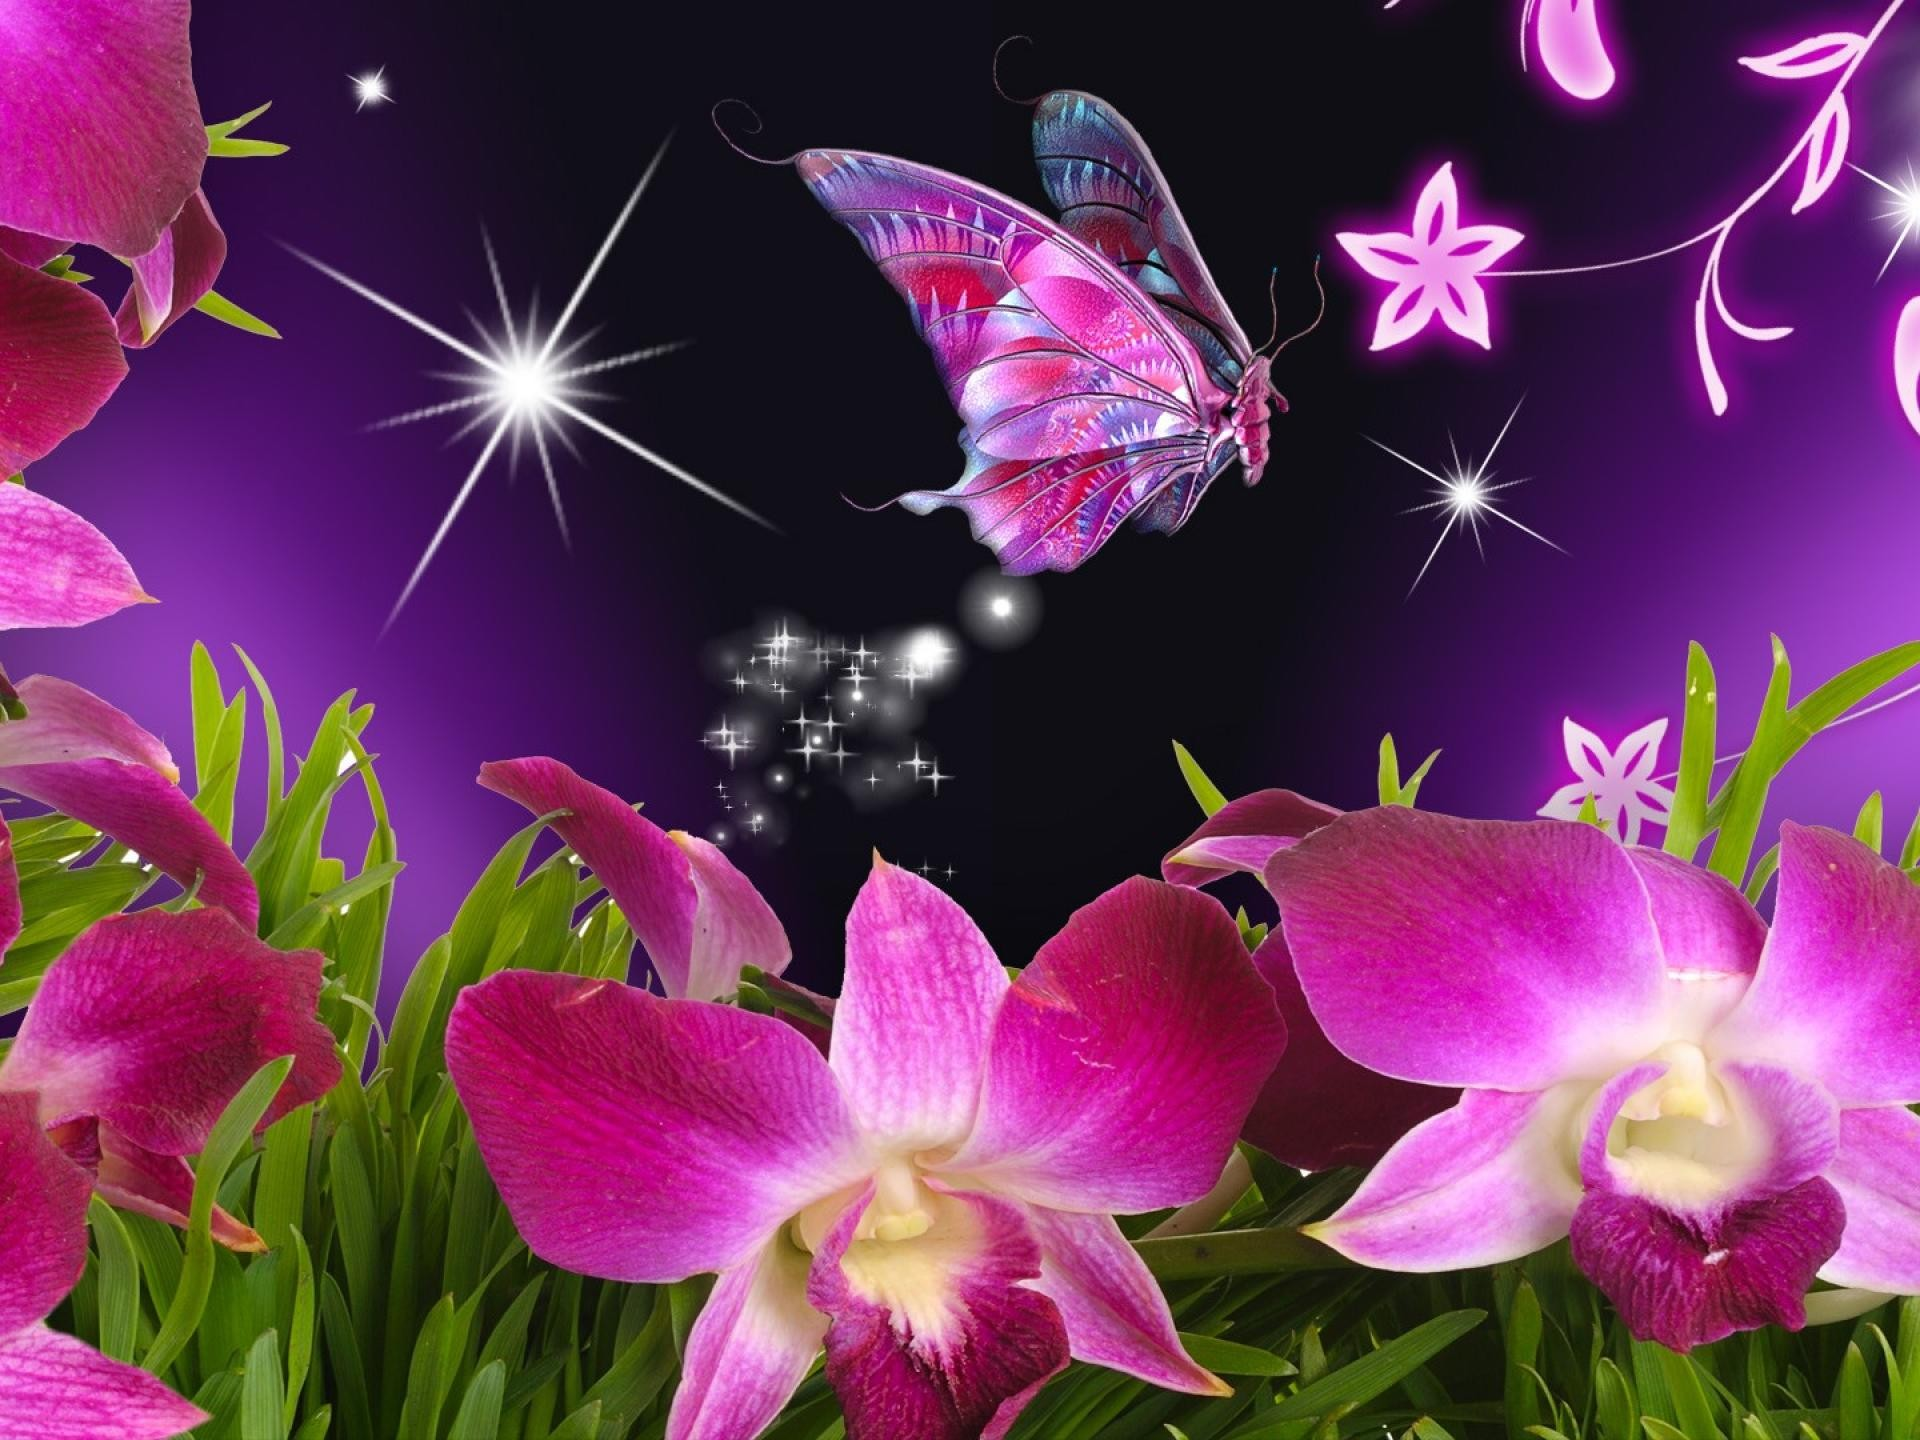 Wallpaper orchidee steine  Orchideen und Schmetterling für Monarchen wallpaper | AllWallpaper ...